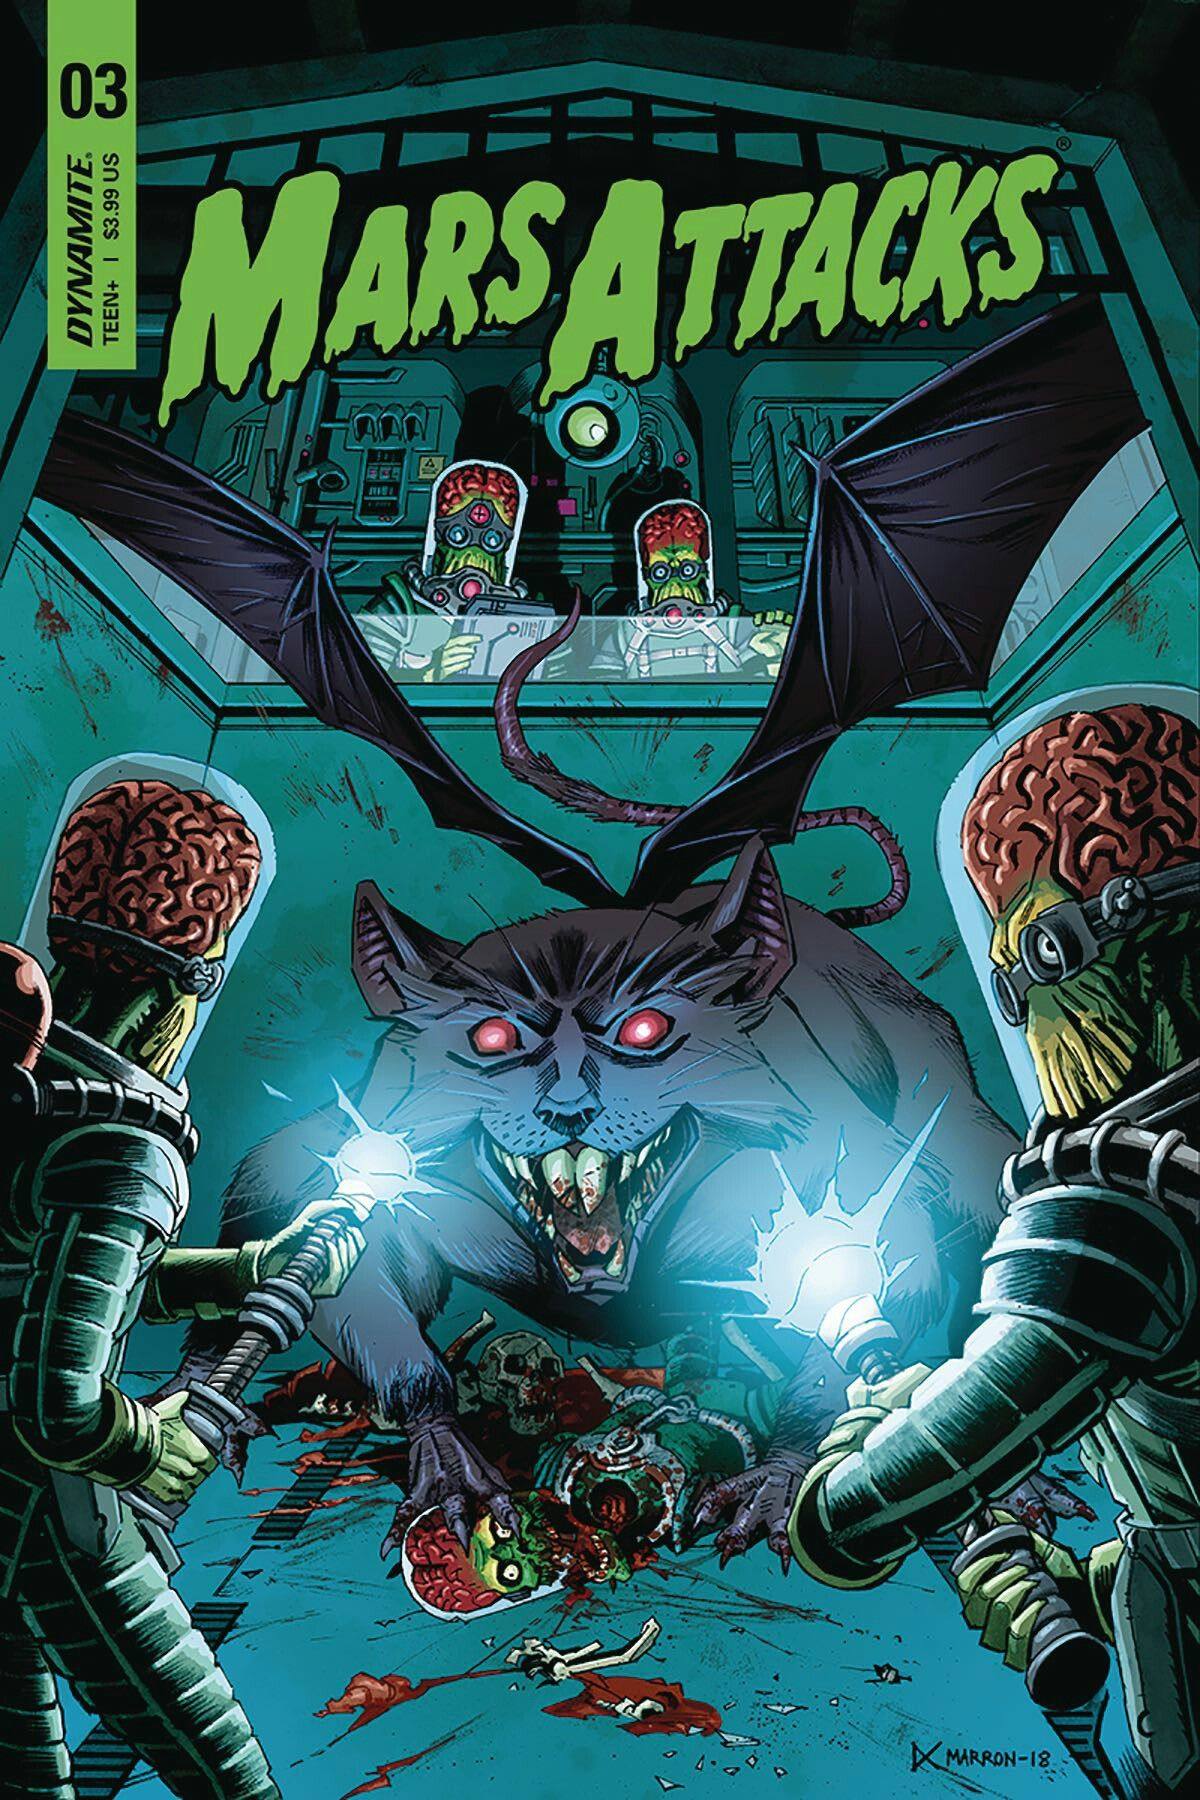 Mars Attacks Dynamite Comics, Dark horse, Comic book cover